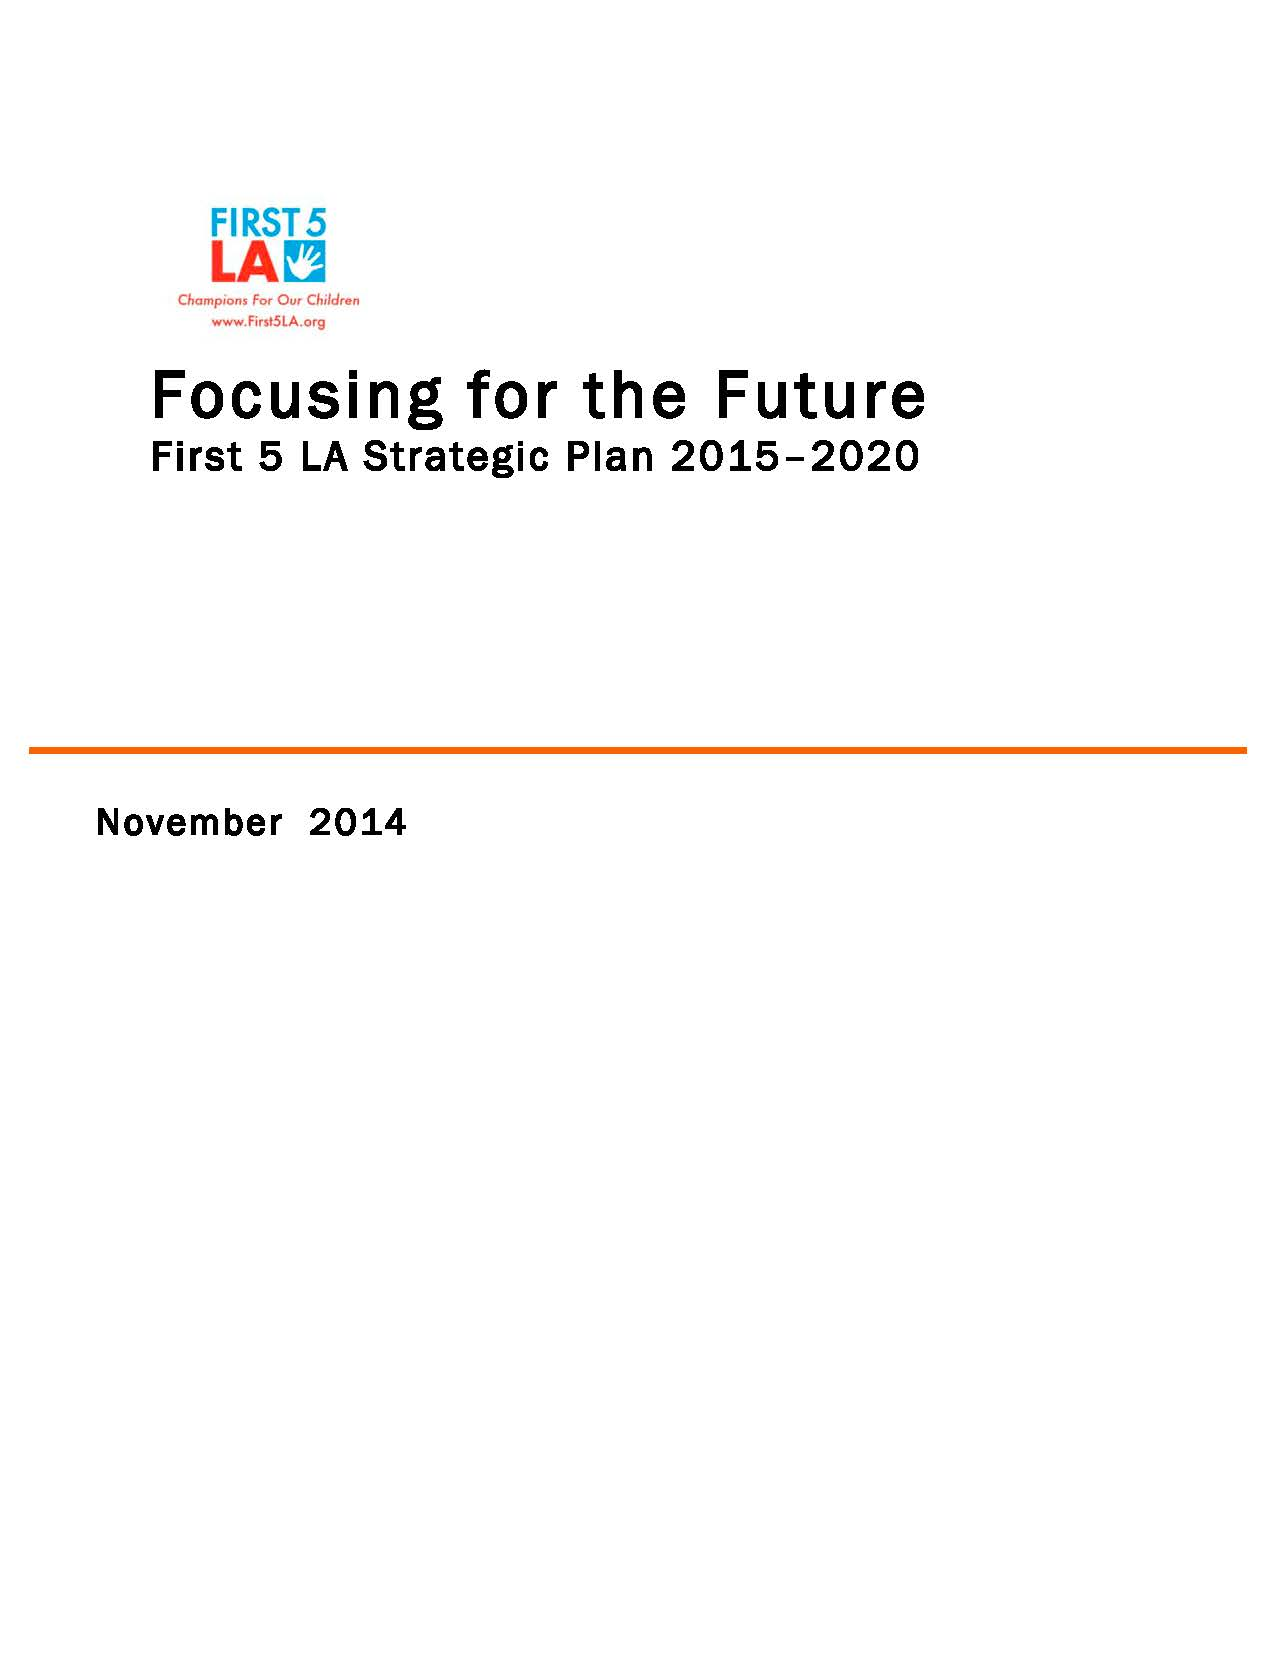 Check out the final product:First 5 LA 2015-2020 Strategic Plan